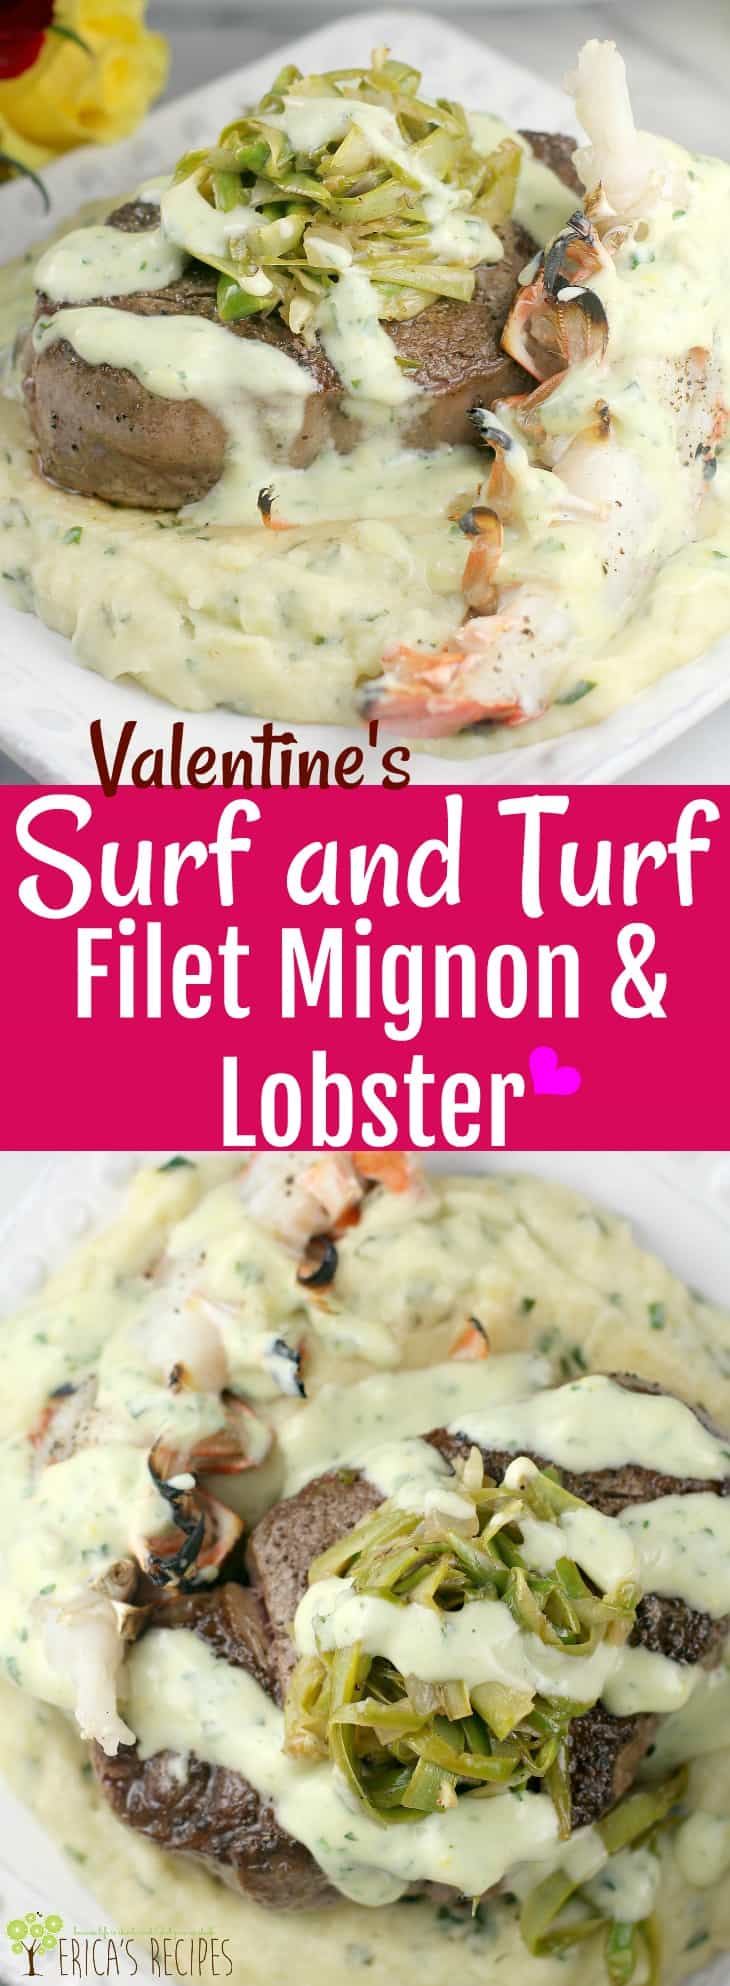 Msg 4 21+ Valentine's Surf and Turf Filet Mignon and Lobster #MyTFMValentine #TheFreshMarket #ad #recipe #food #valentinesday